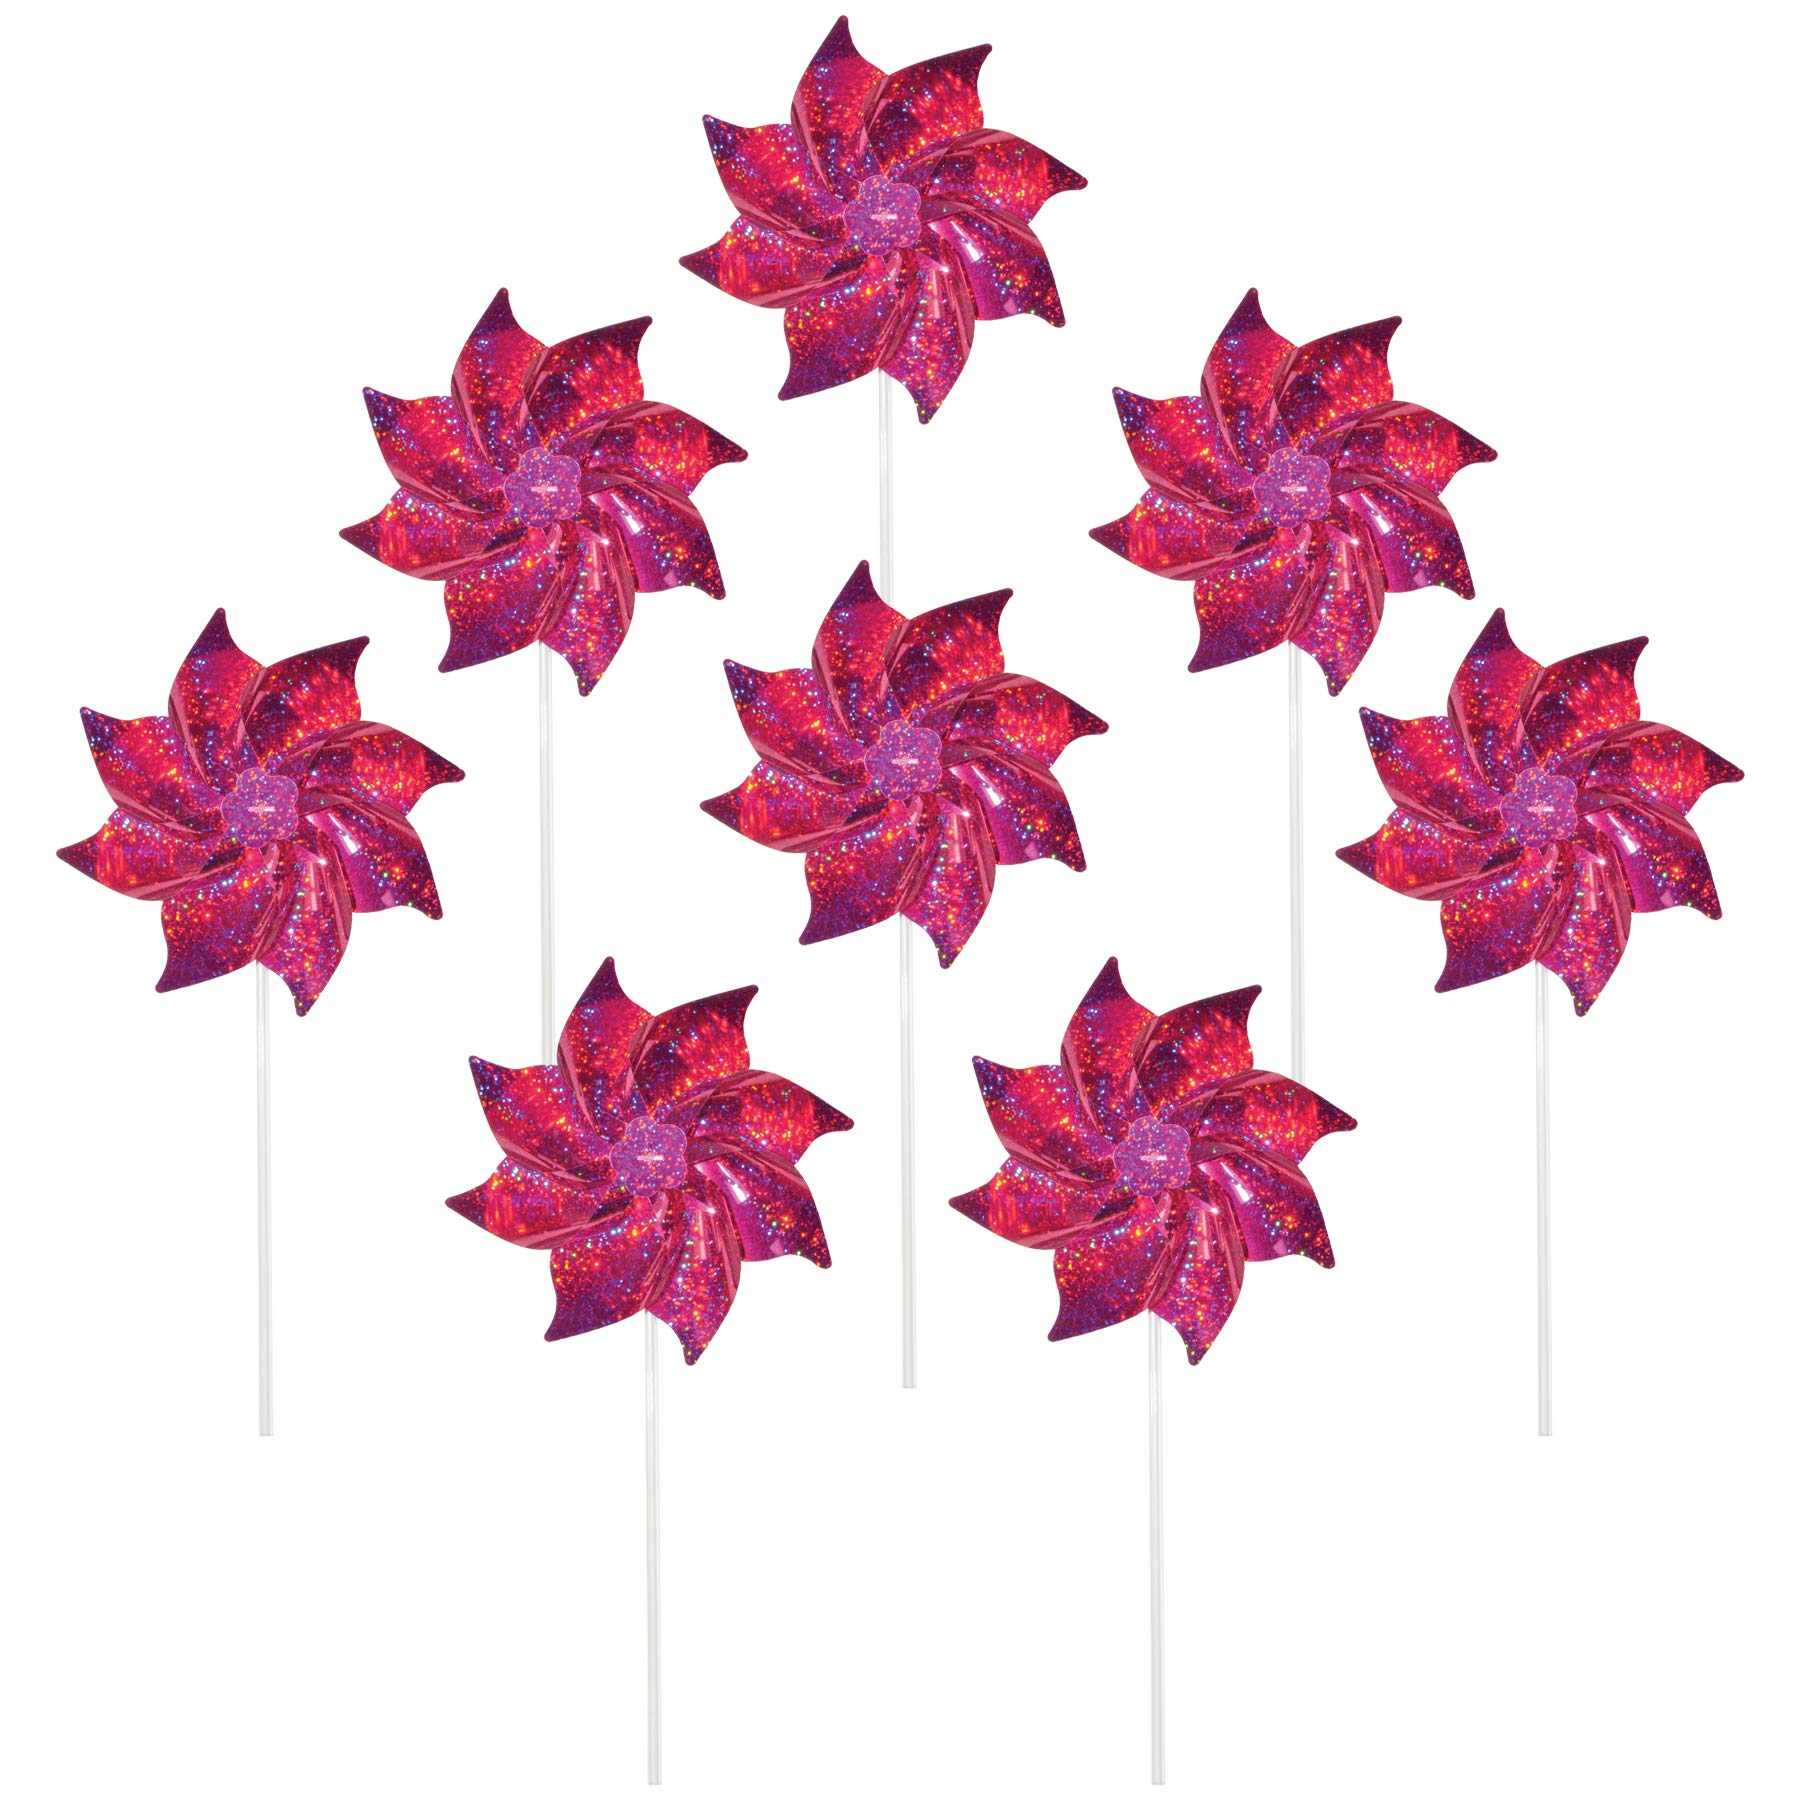 In the Breeze 2713 Sparkling Mylar Pinwheel Decorative Spinner-8 Piece Bag, Pink Sparkle/8 Pieces